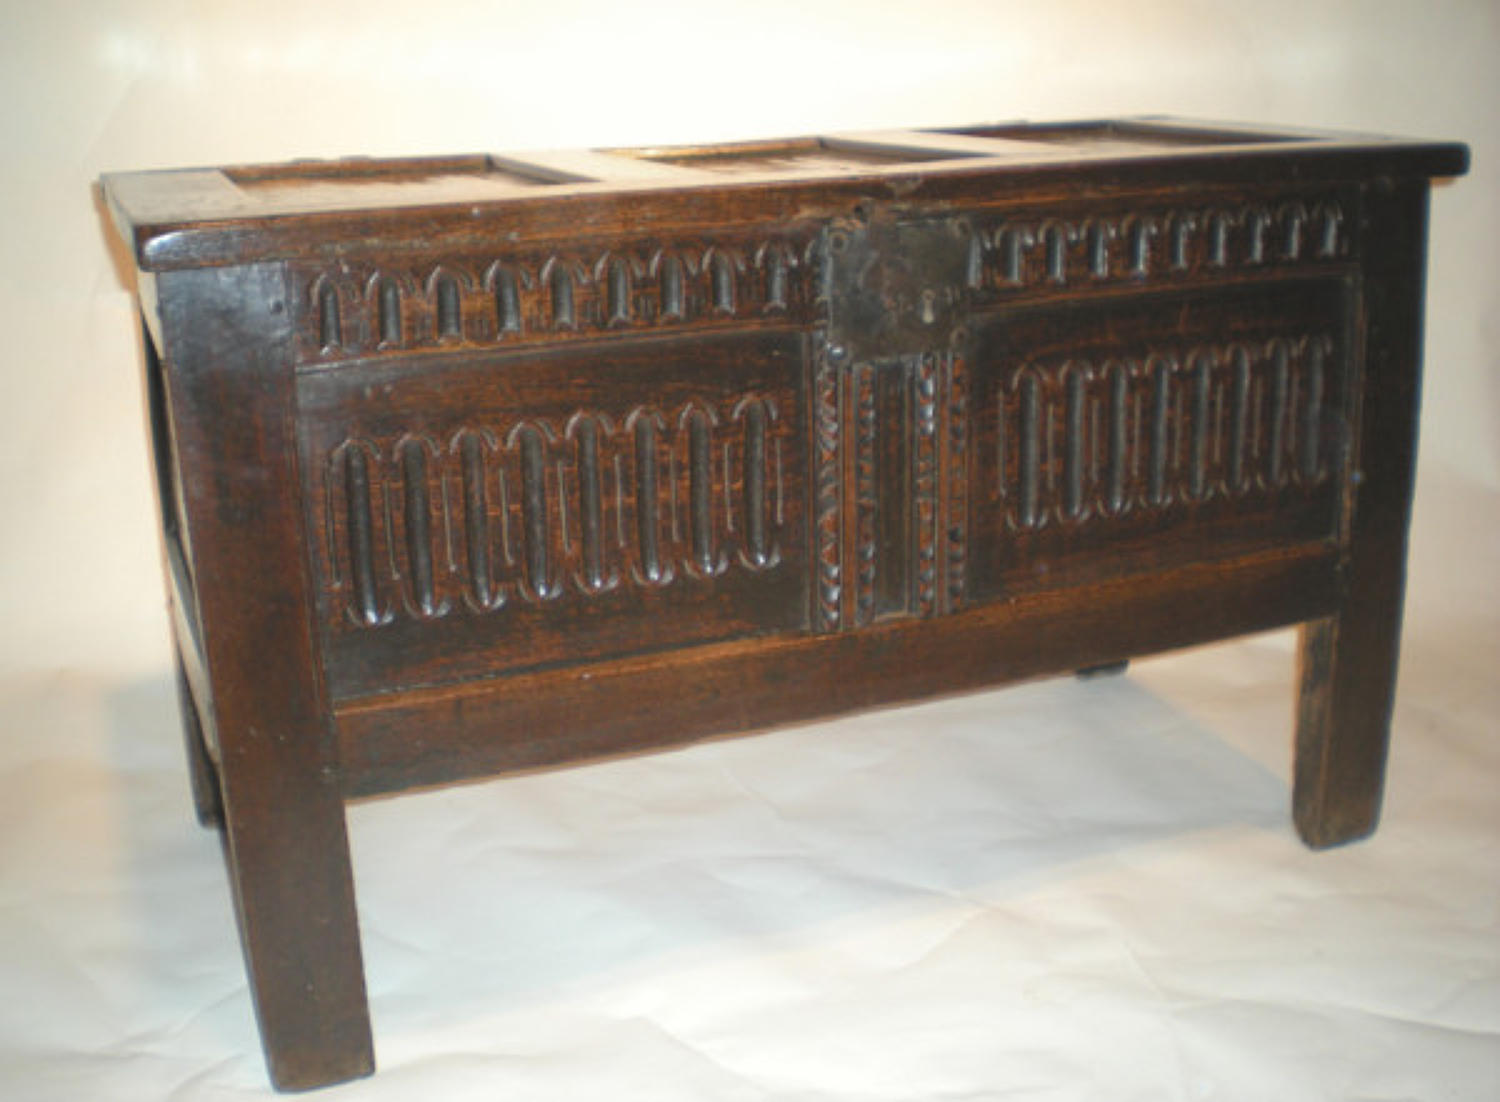 17thc Oak panelled Coffer. English C1630 - 40